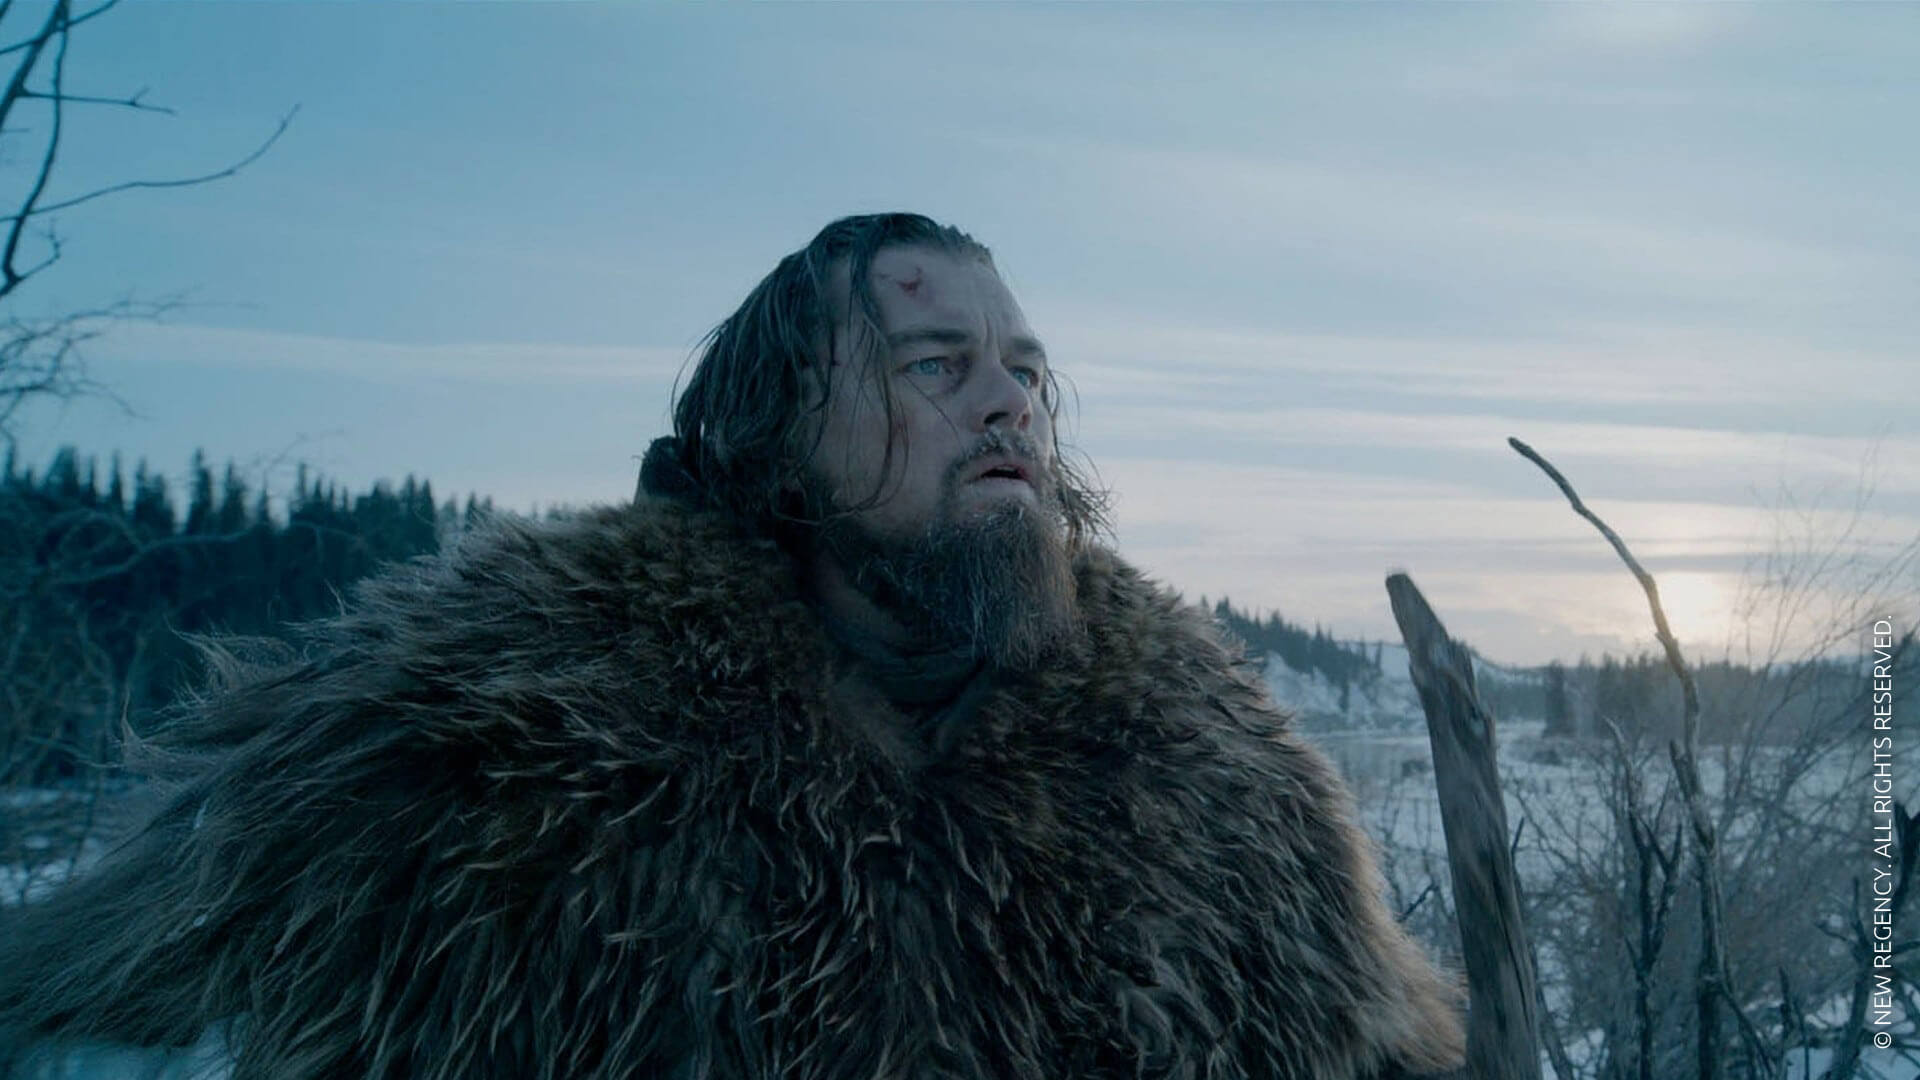 DiCaprio, pariuri și ficat crud de bizon – The Revenant: Legenda lui Hugh Glass!